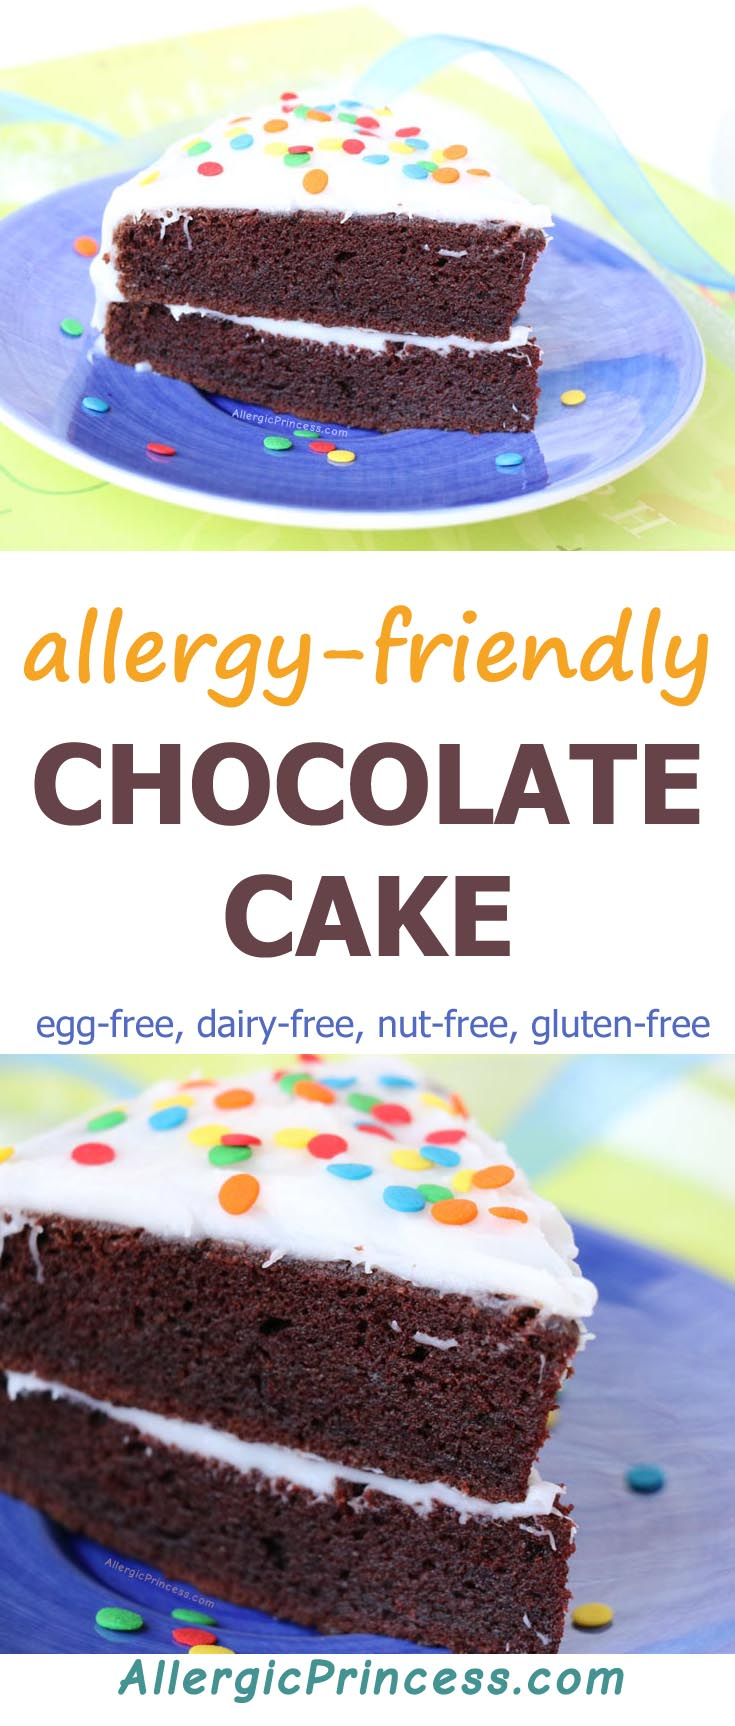 Whether it's time for a smash cake or a birthday cake for any age, this egg-free dairy-free nut-free gluten-free CHOCOLATE CAKE is sure to hit the spot.